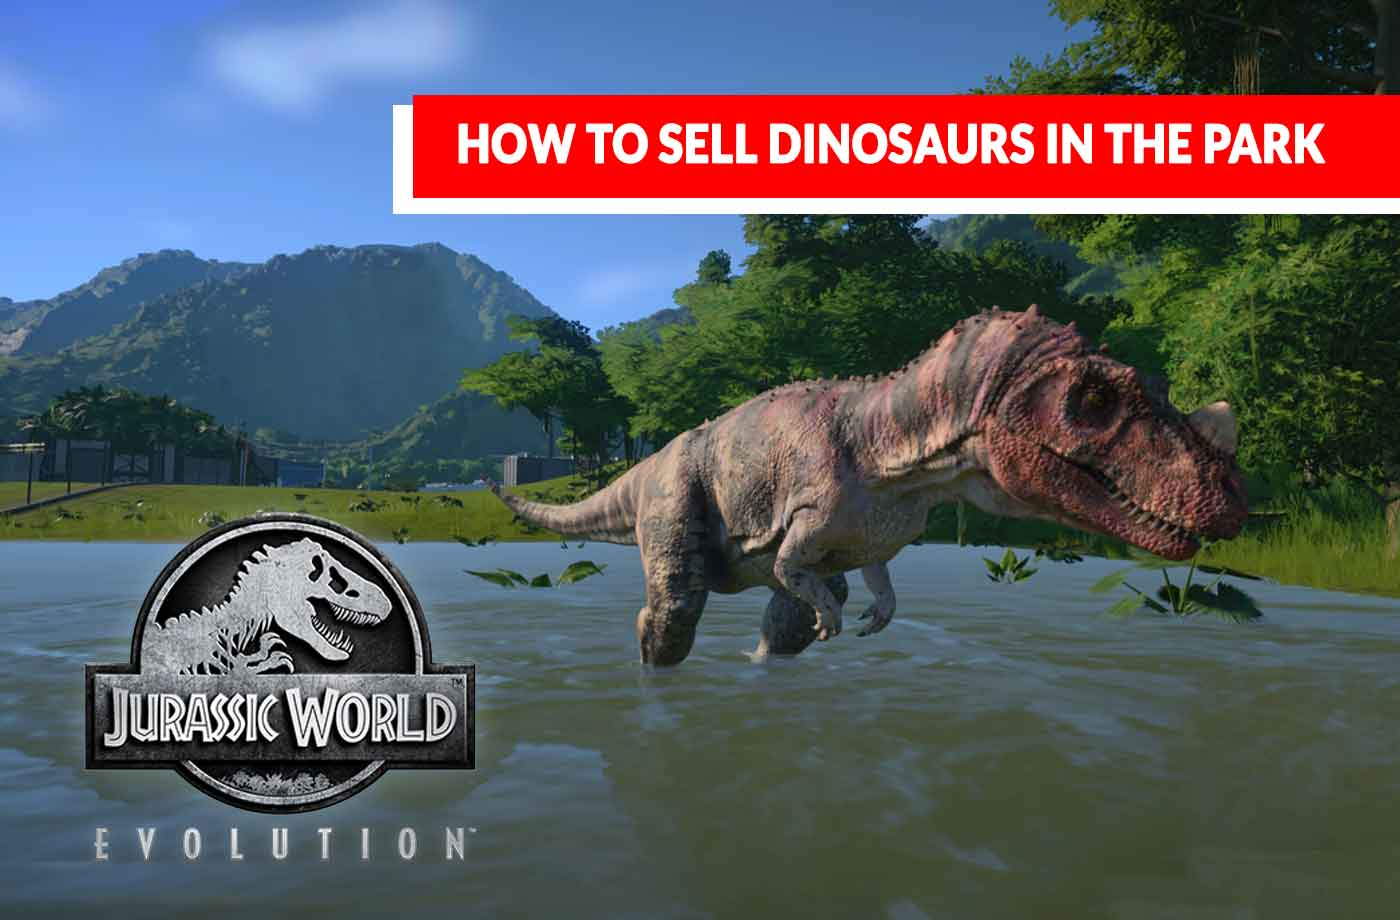 Jurassic World Evolution how to sell dinosaurs in the park